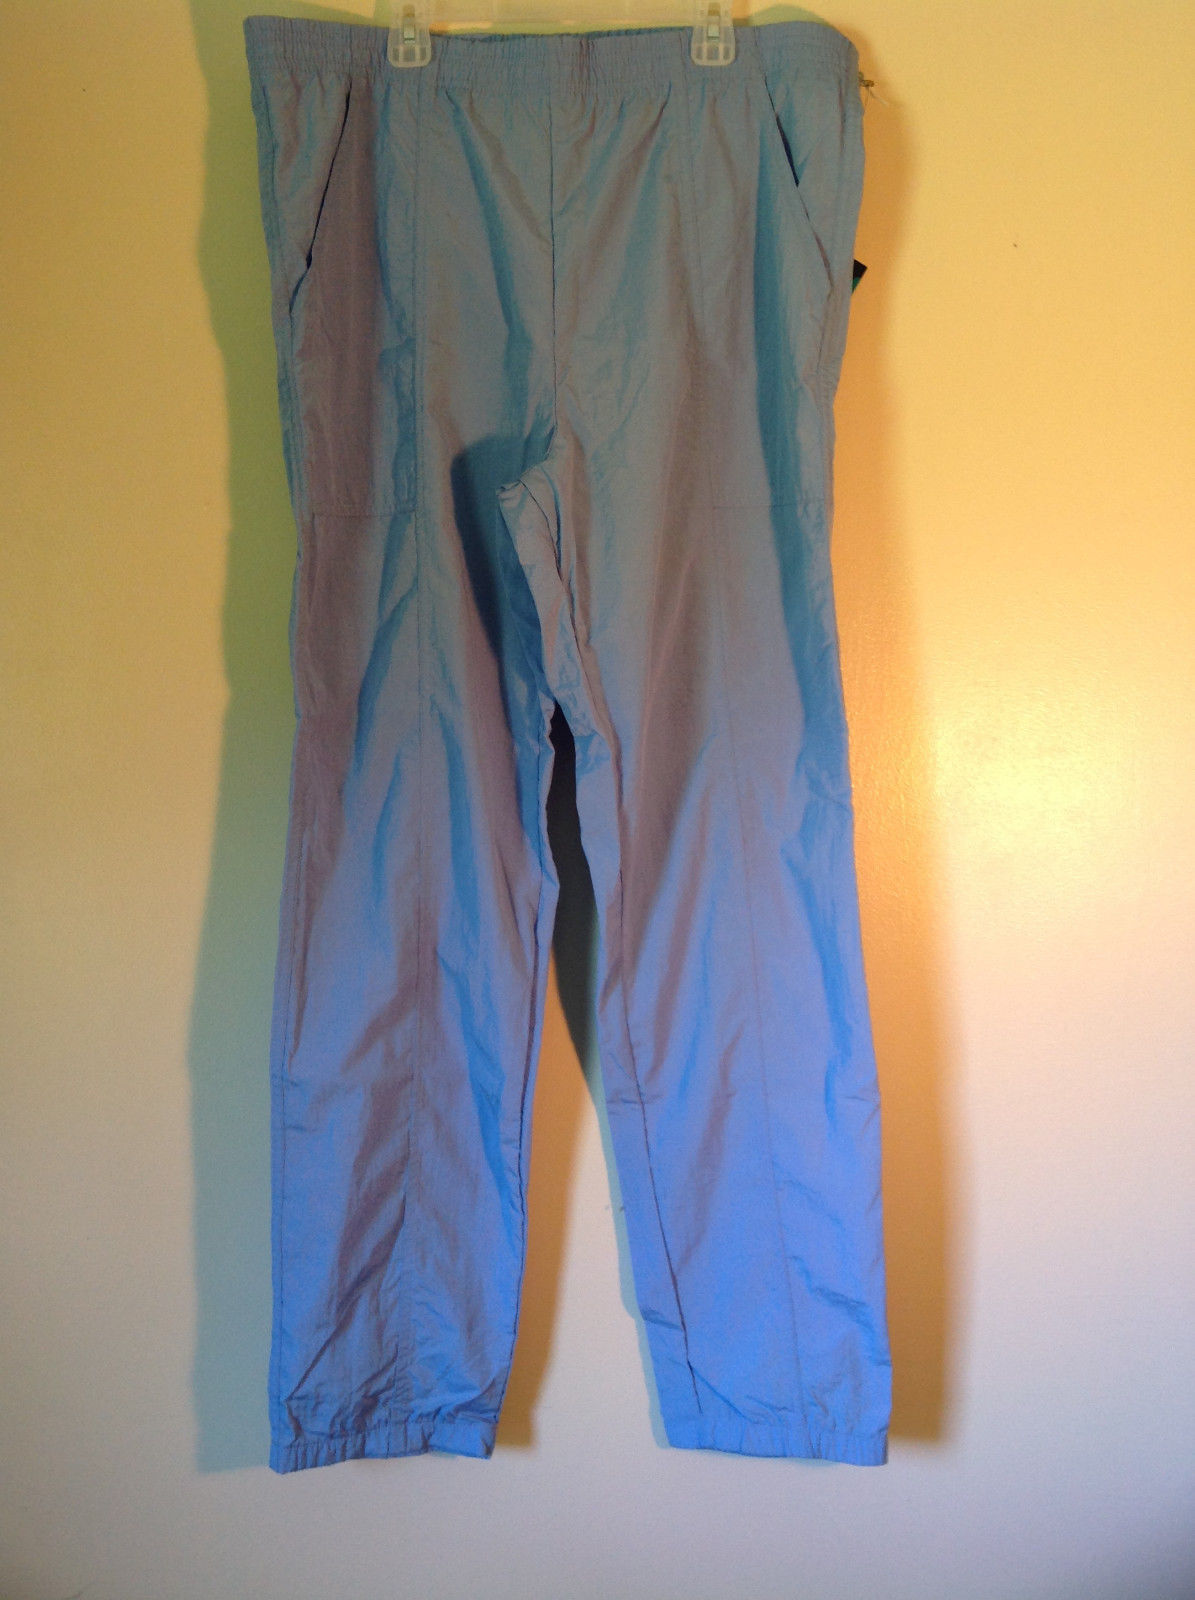 Size Medium Duffel Casual Pants with Elastic Waist Tags Attached Made in USA